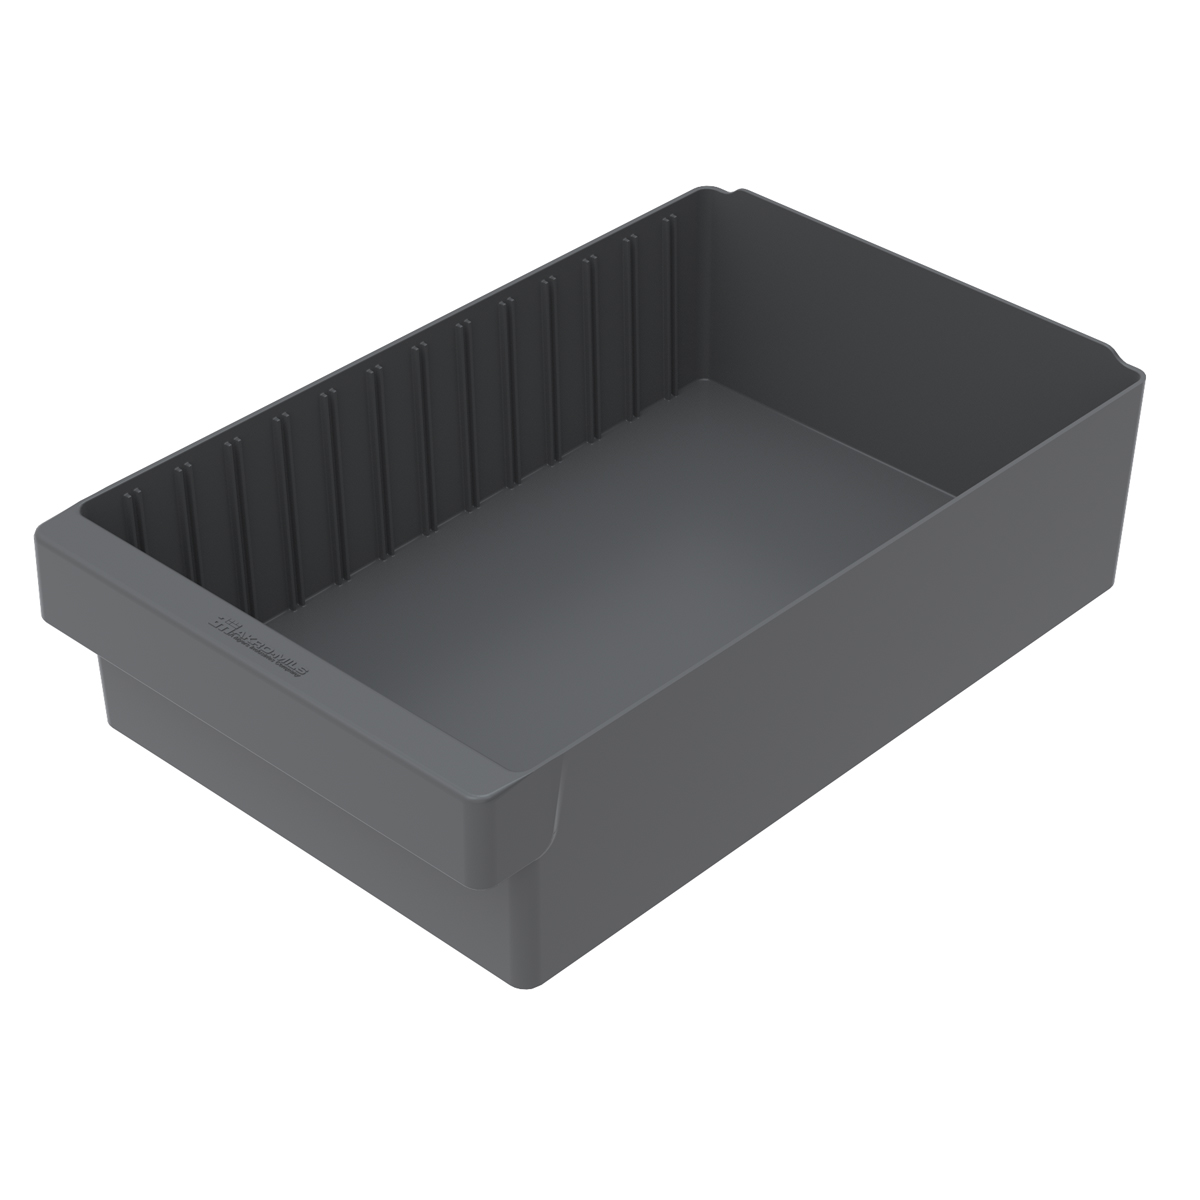 AkroDrawer 17-5/8 x 11-1/8 x 4-5/8, Gray (31118GRY).  This item sold in carton quantities of 4.